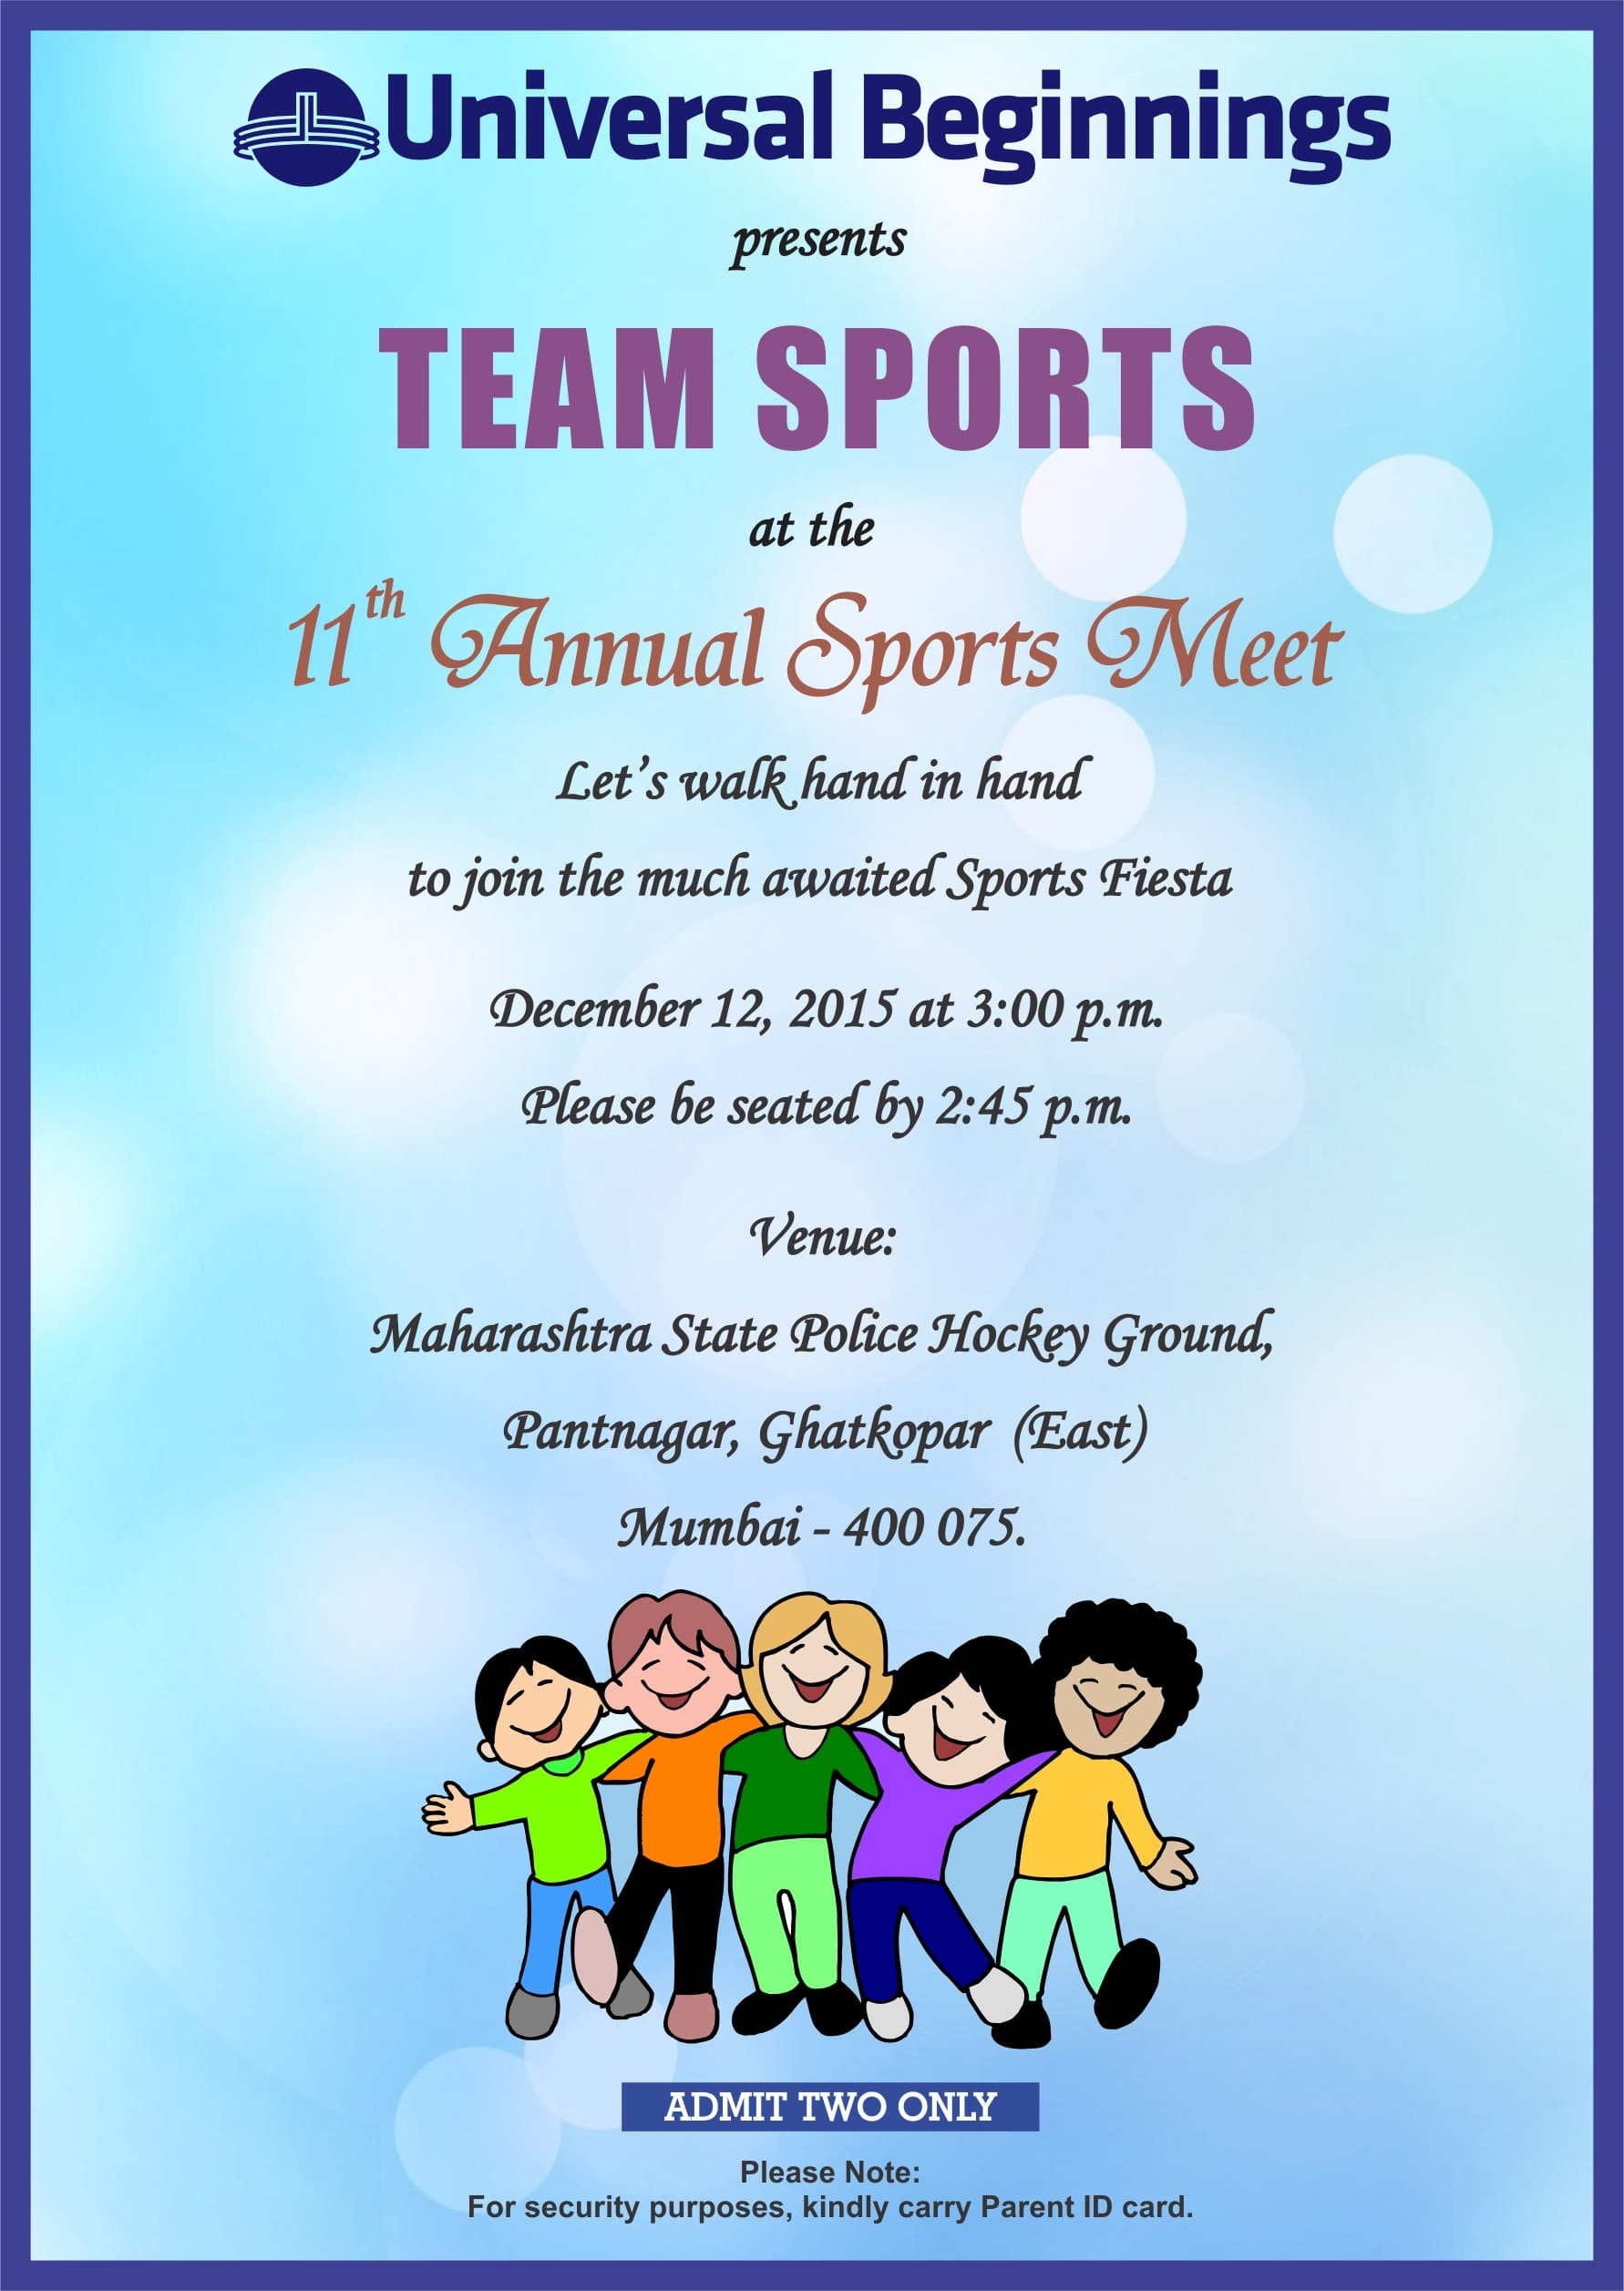 Ub Invitation For Annual Sports Meet The Universal